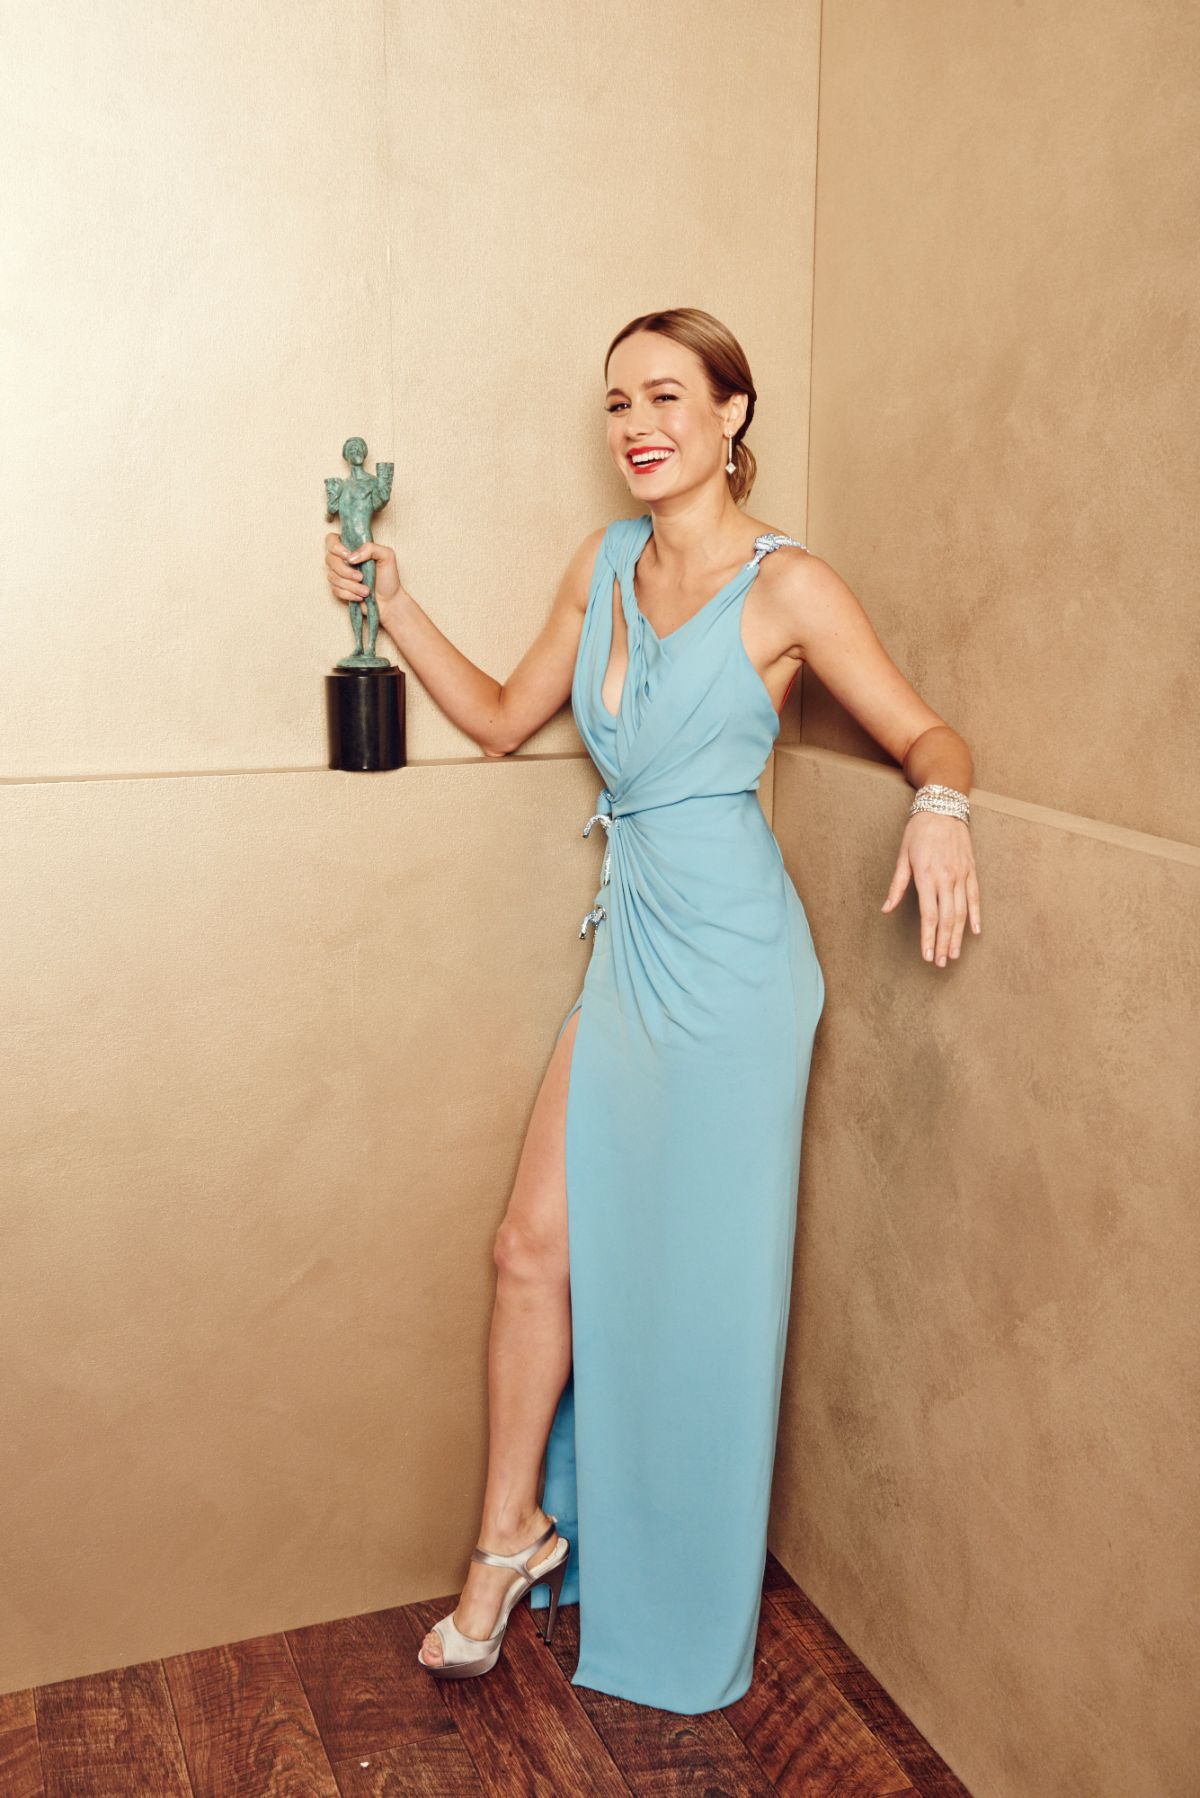 brie-larson-hot-photoshoot